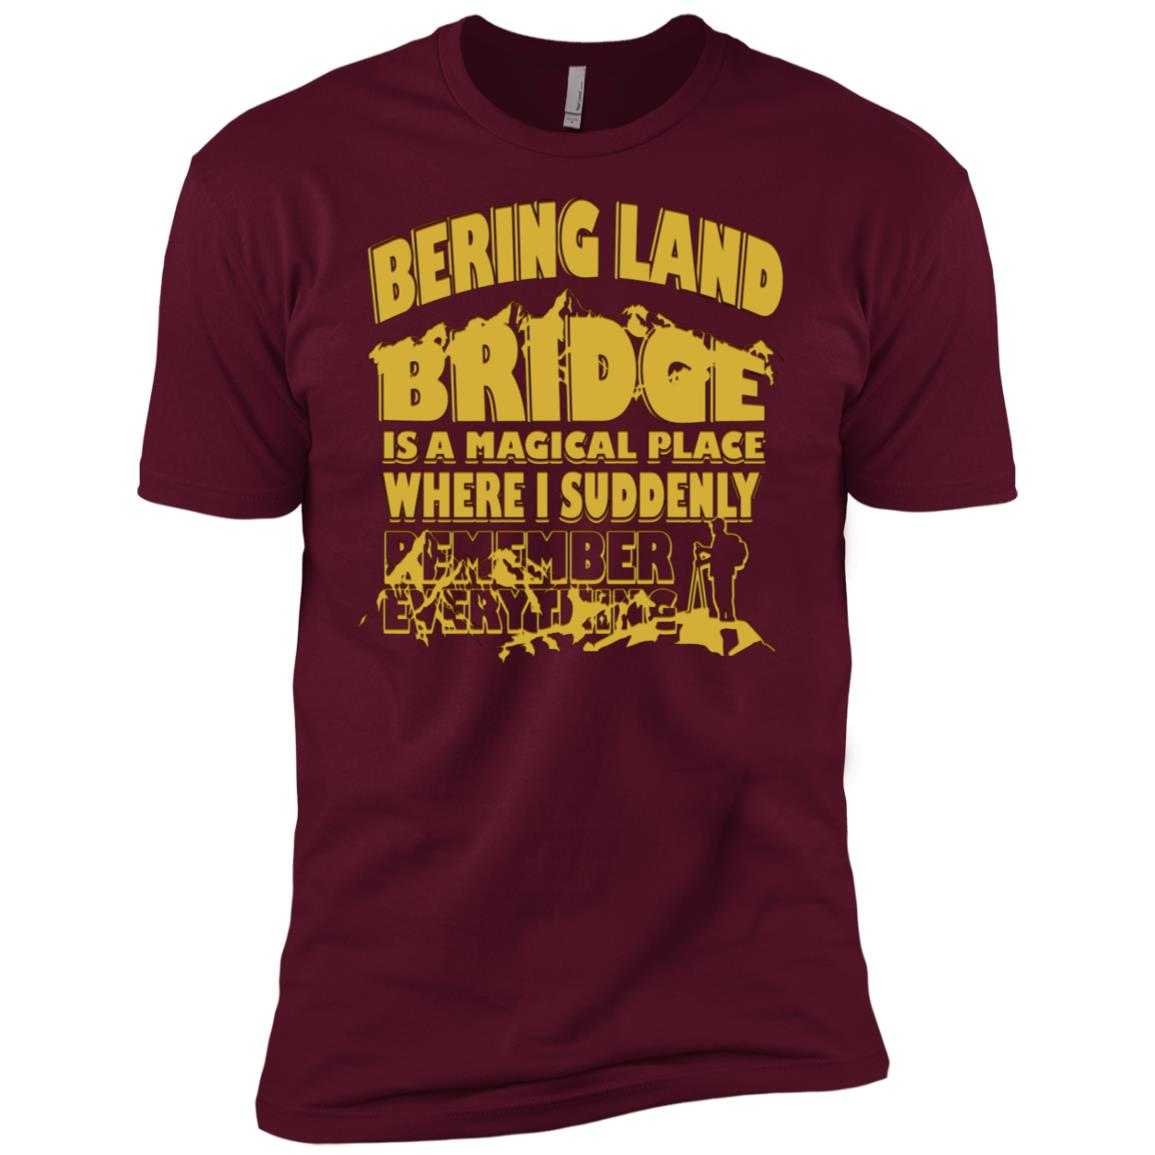 Bering Land Bridge Magical Place Remember Everything -1 Men Short Sleeve